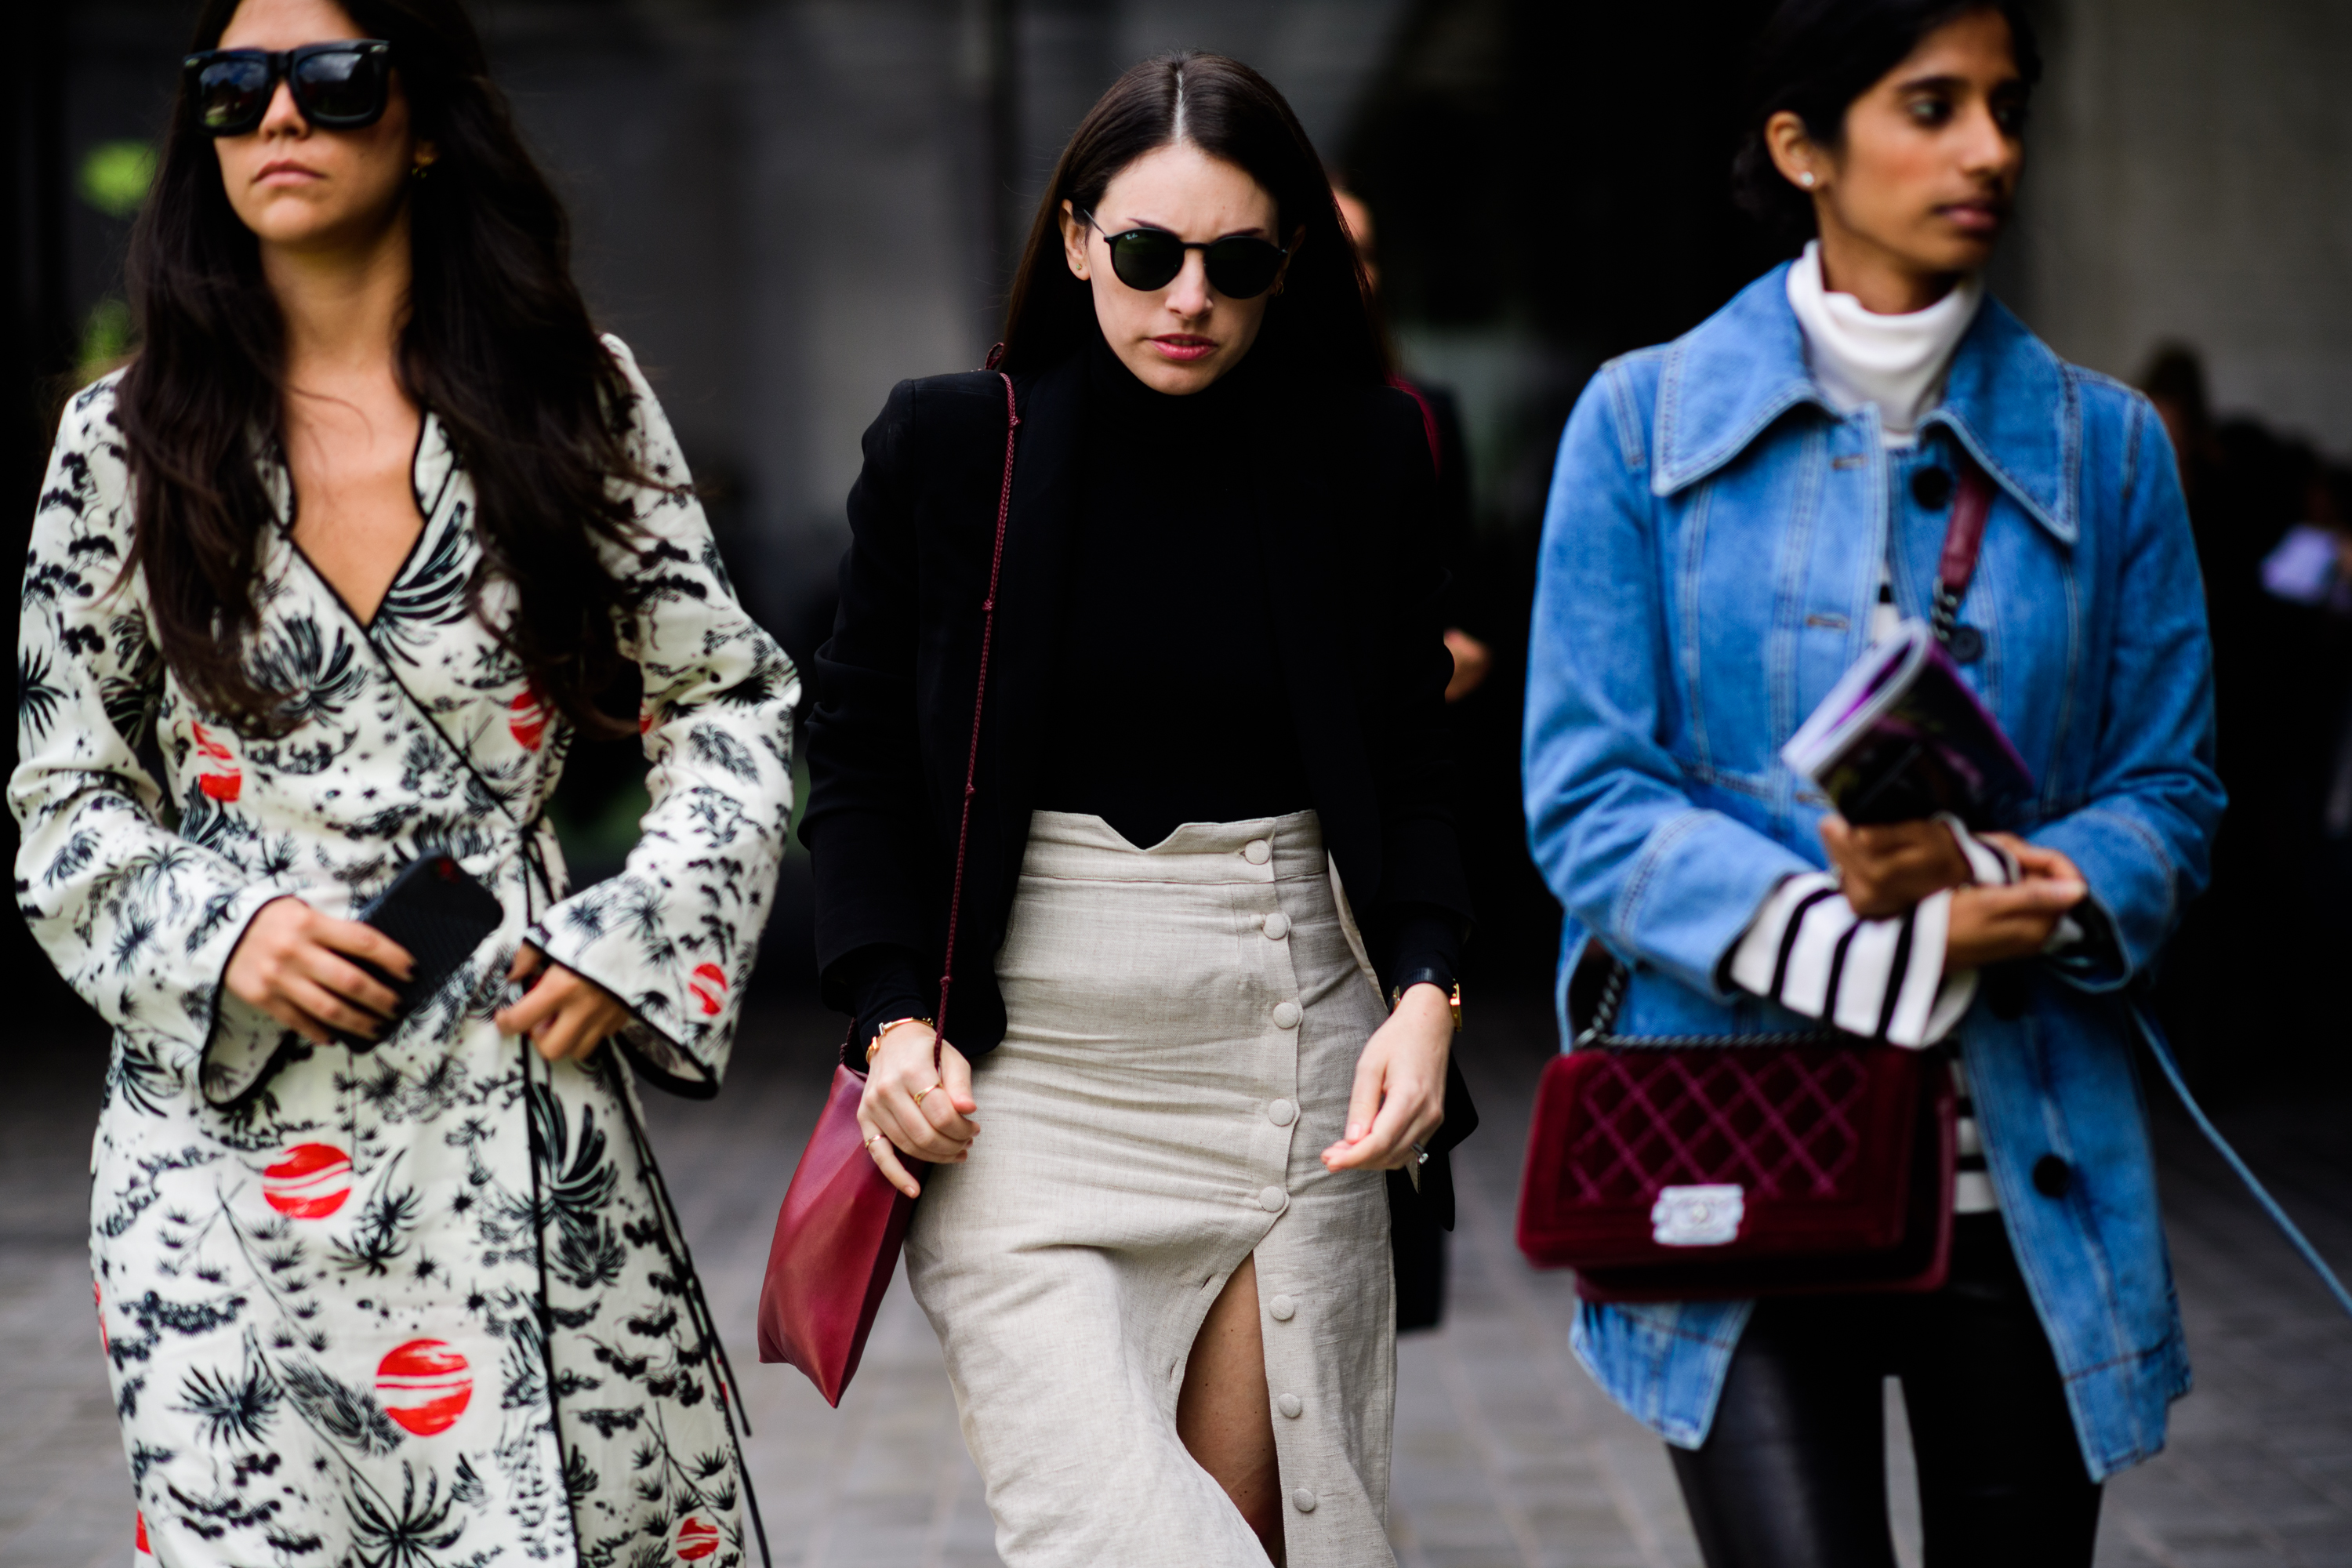 london-lfw-street-style-ss18-day-2-tyler-joe-062-1505754161